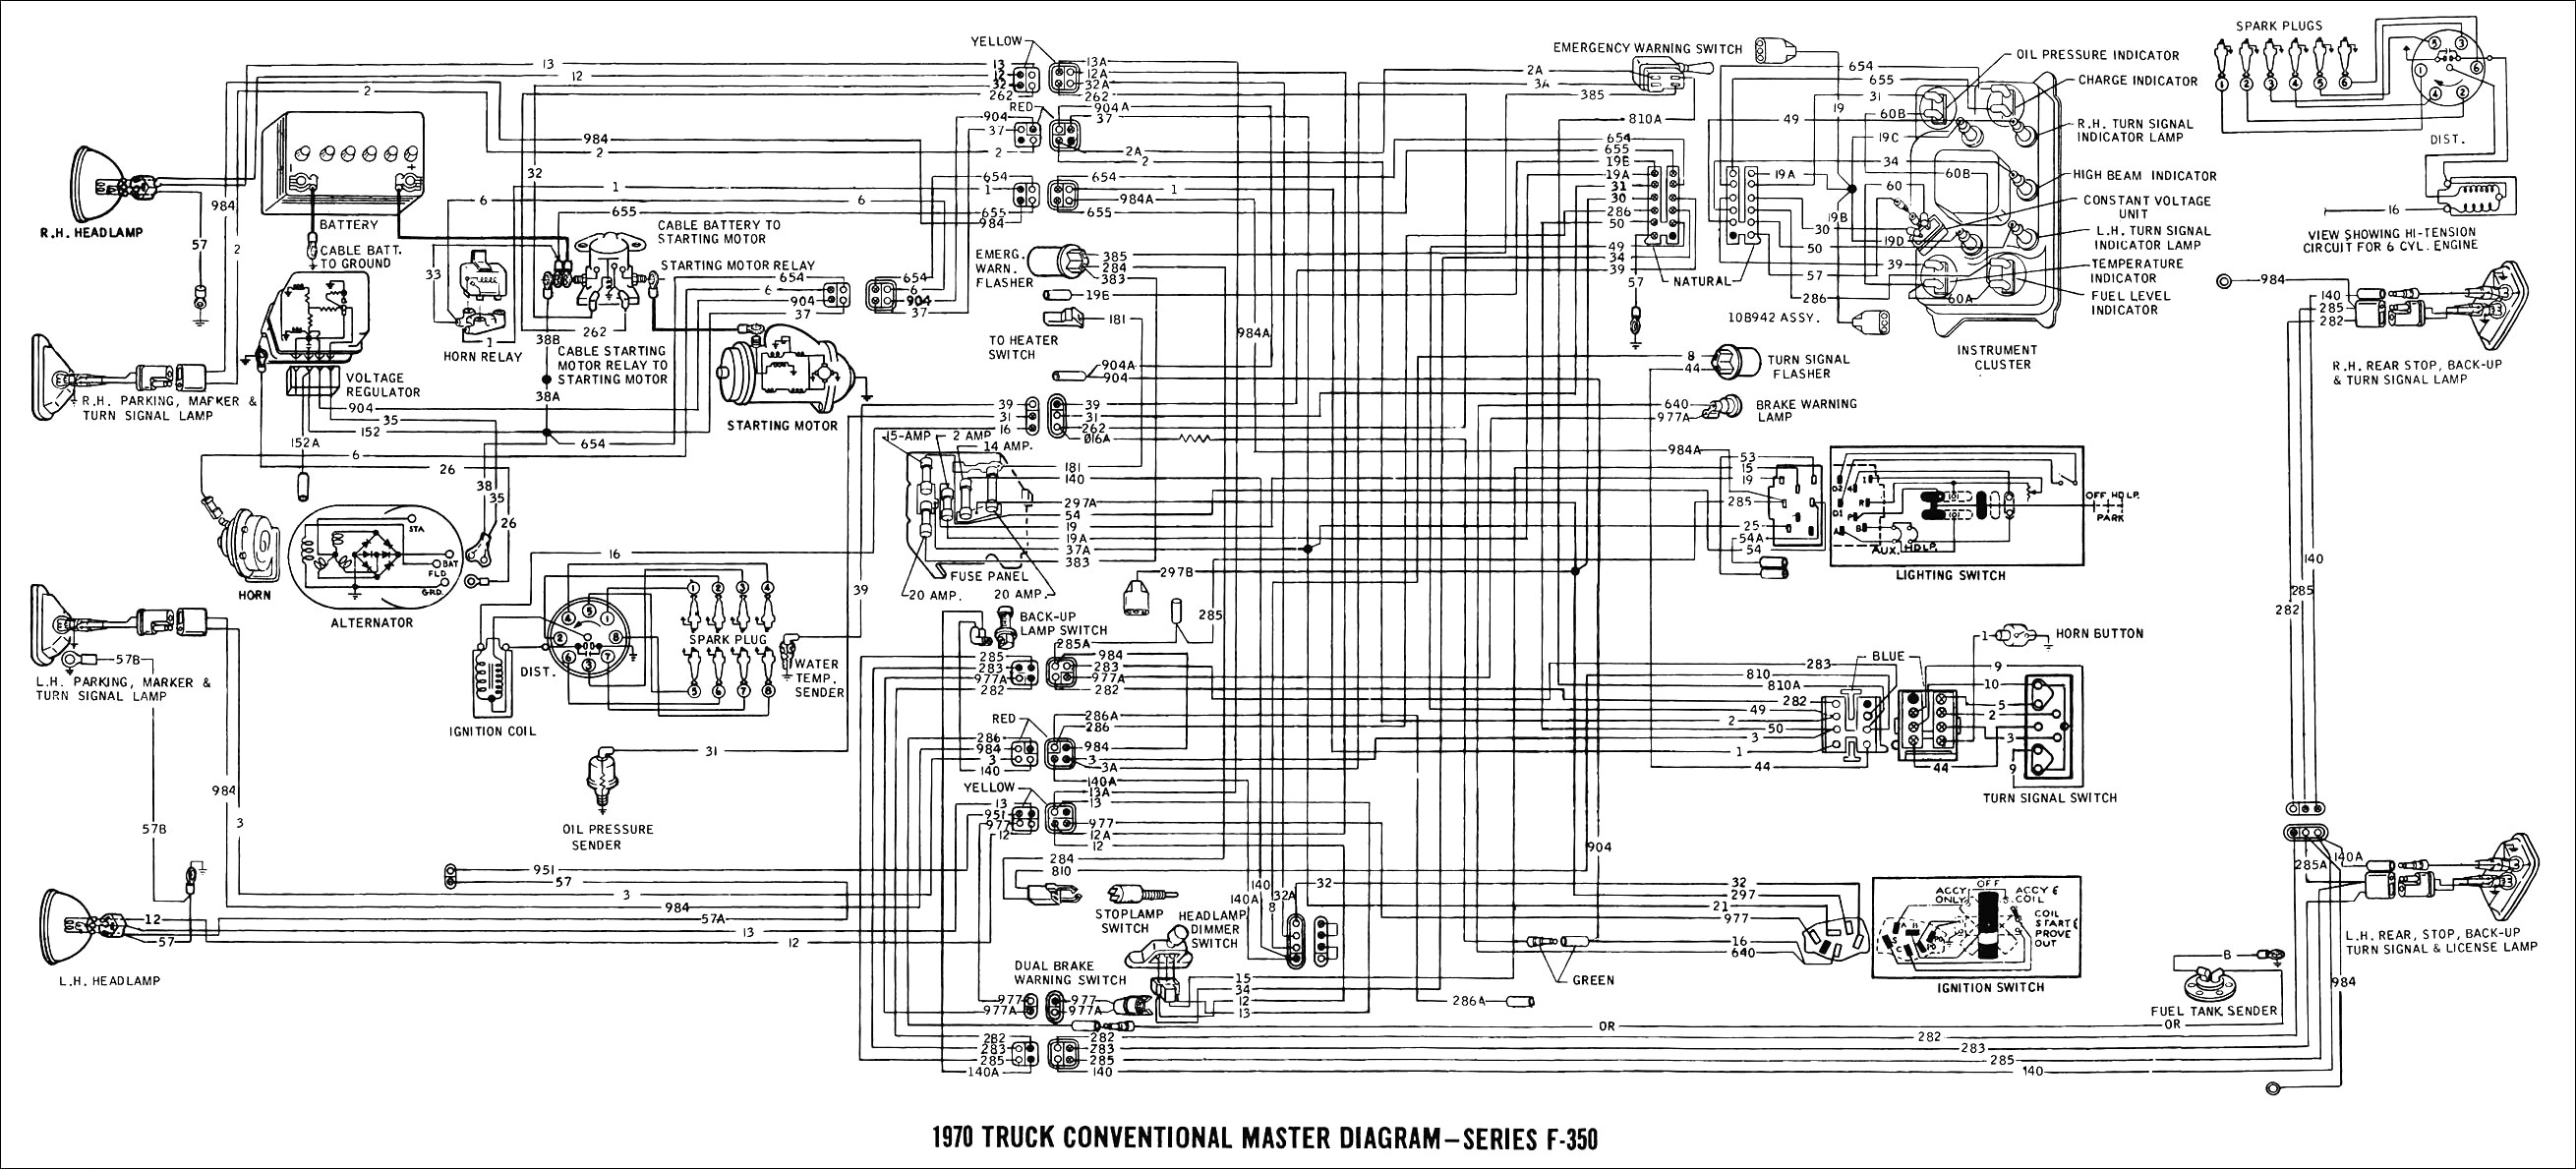 97 ford ranger engine diagram my wiring diagram 2000 ford explorer engine diagram 1996 ford ranger wiring diagram to 2012 03 23 96 4 0 simple f250 trailer